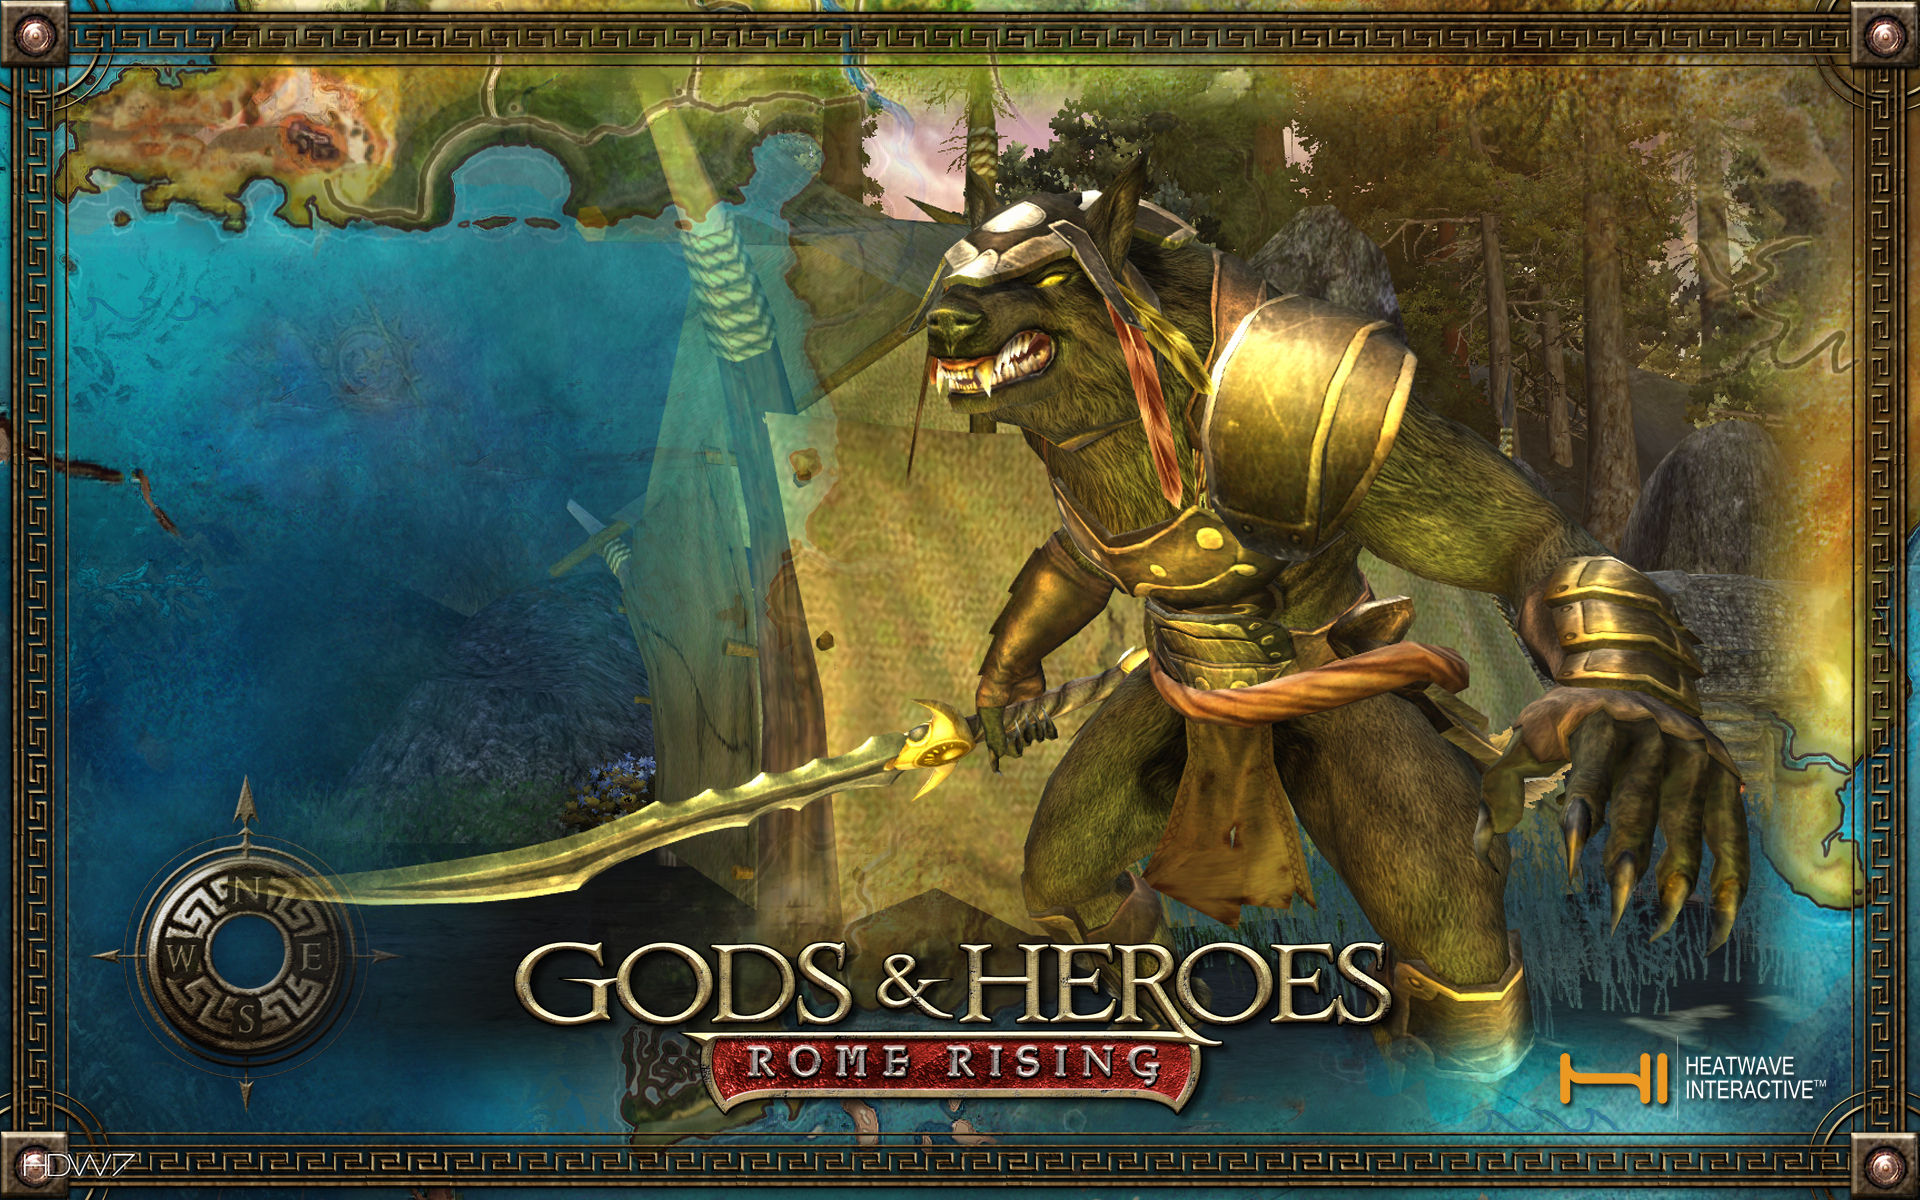 gods and heroes rome rising volta myth widescreen wallpaper